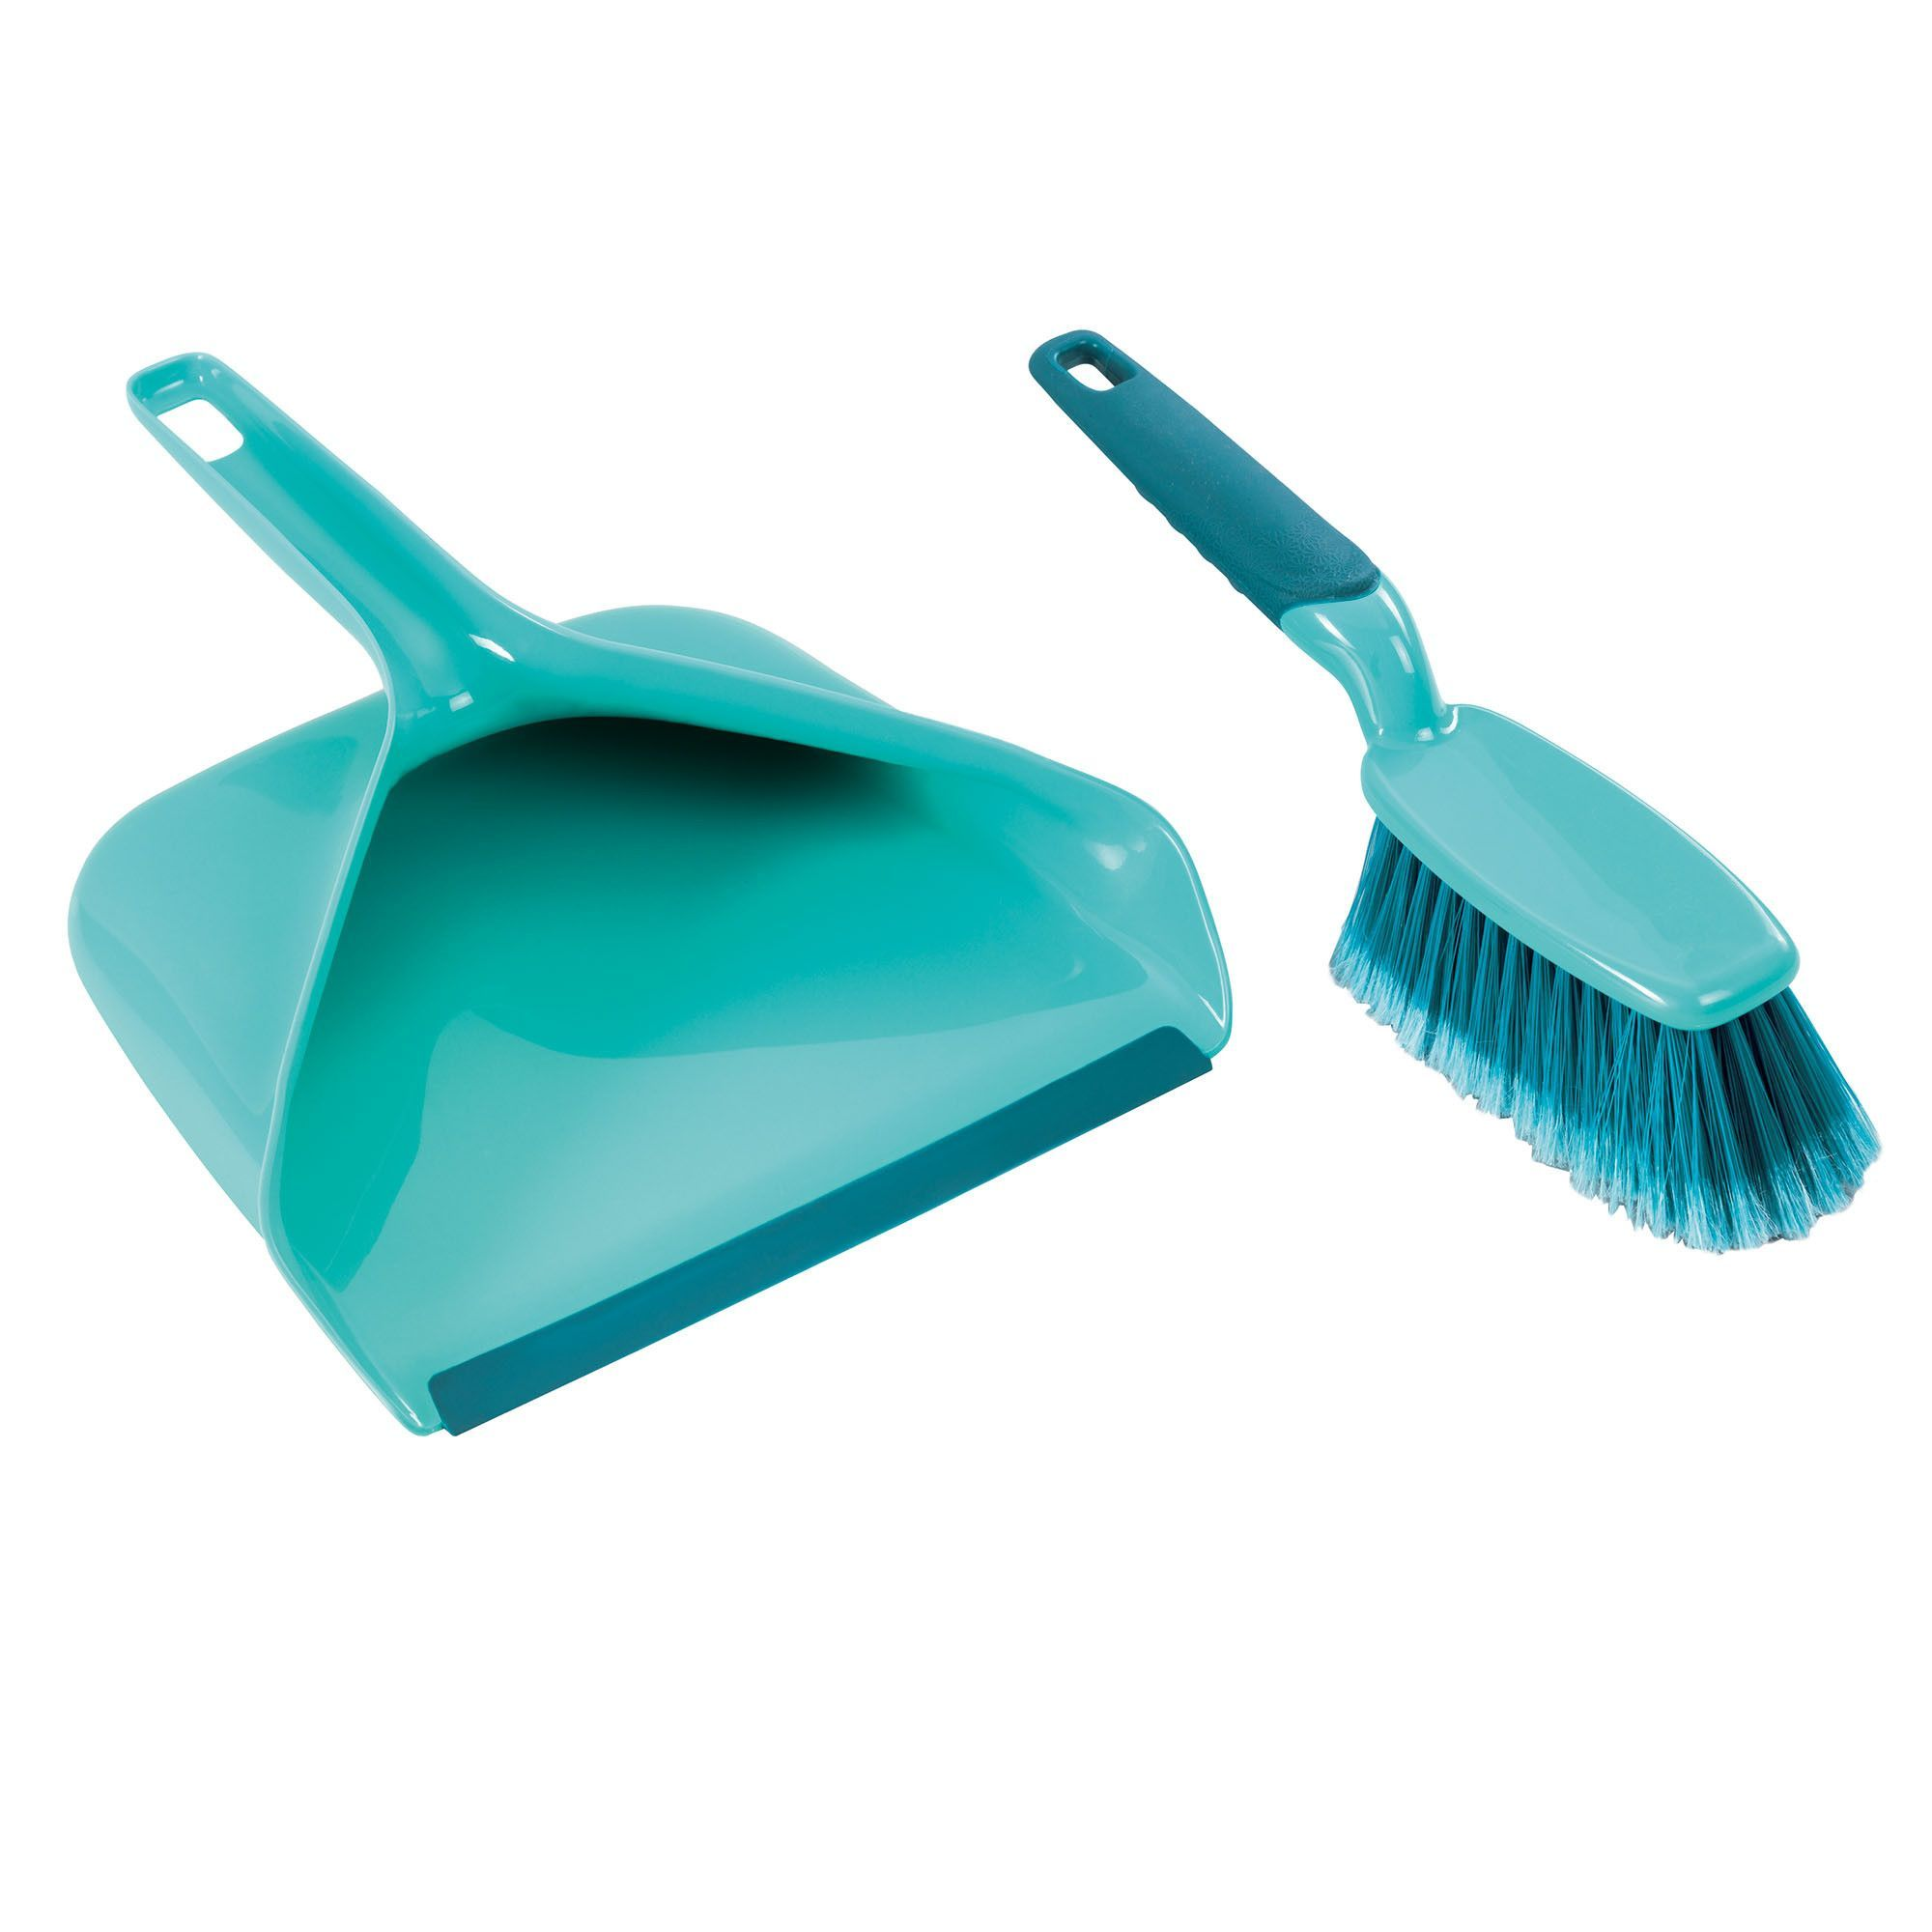 buy Leifheit Broom and Dustpan Set, Turquoise at Harvey & Haley for ...